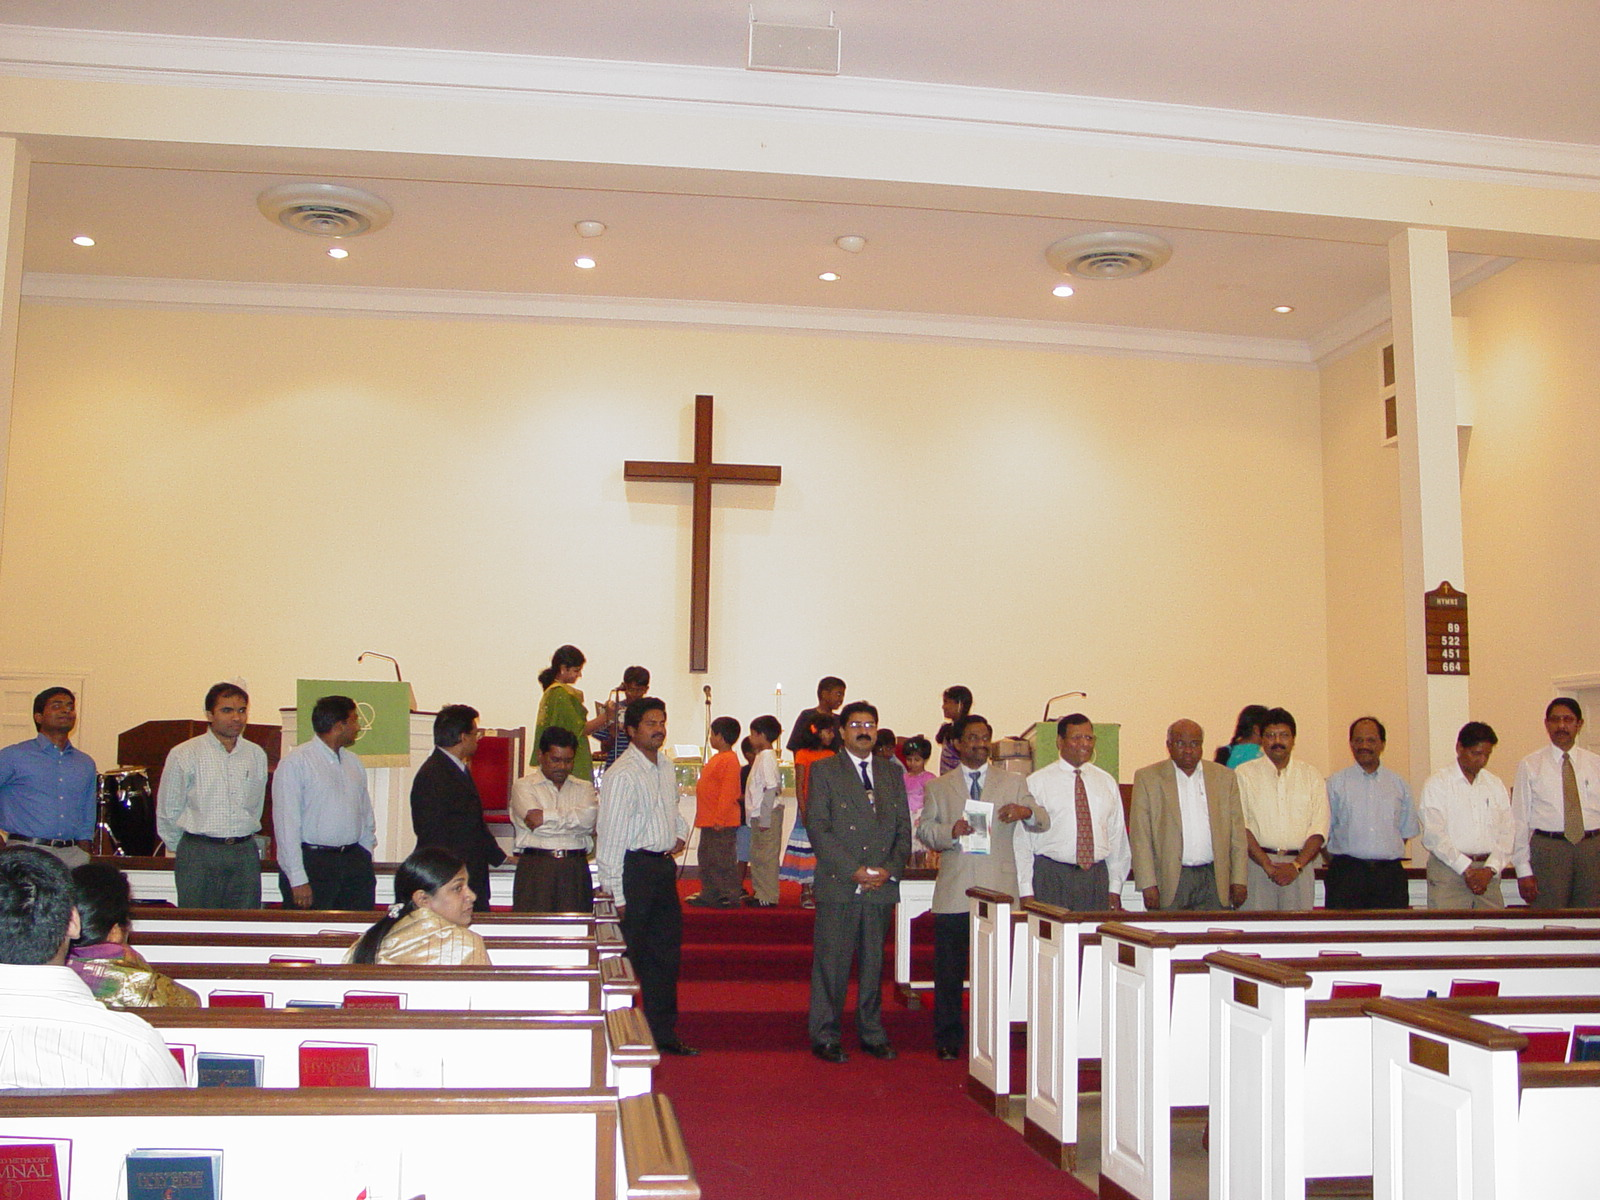 2006 Father's Day Sunday Service Pictures-Collection of ...